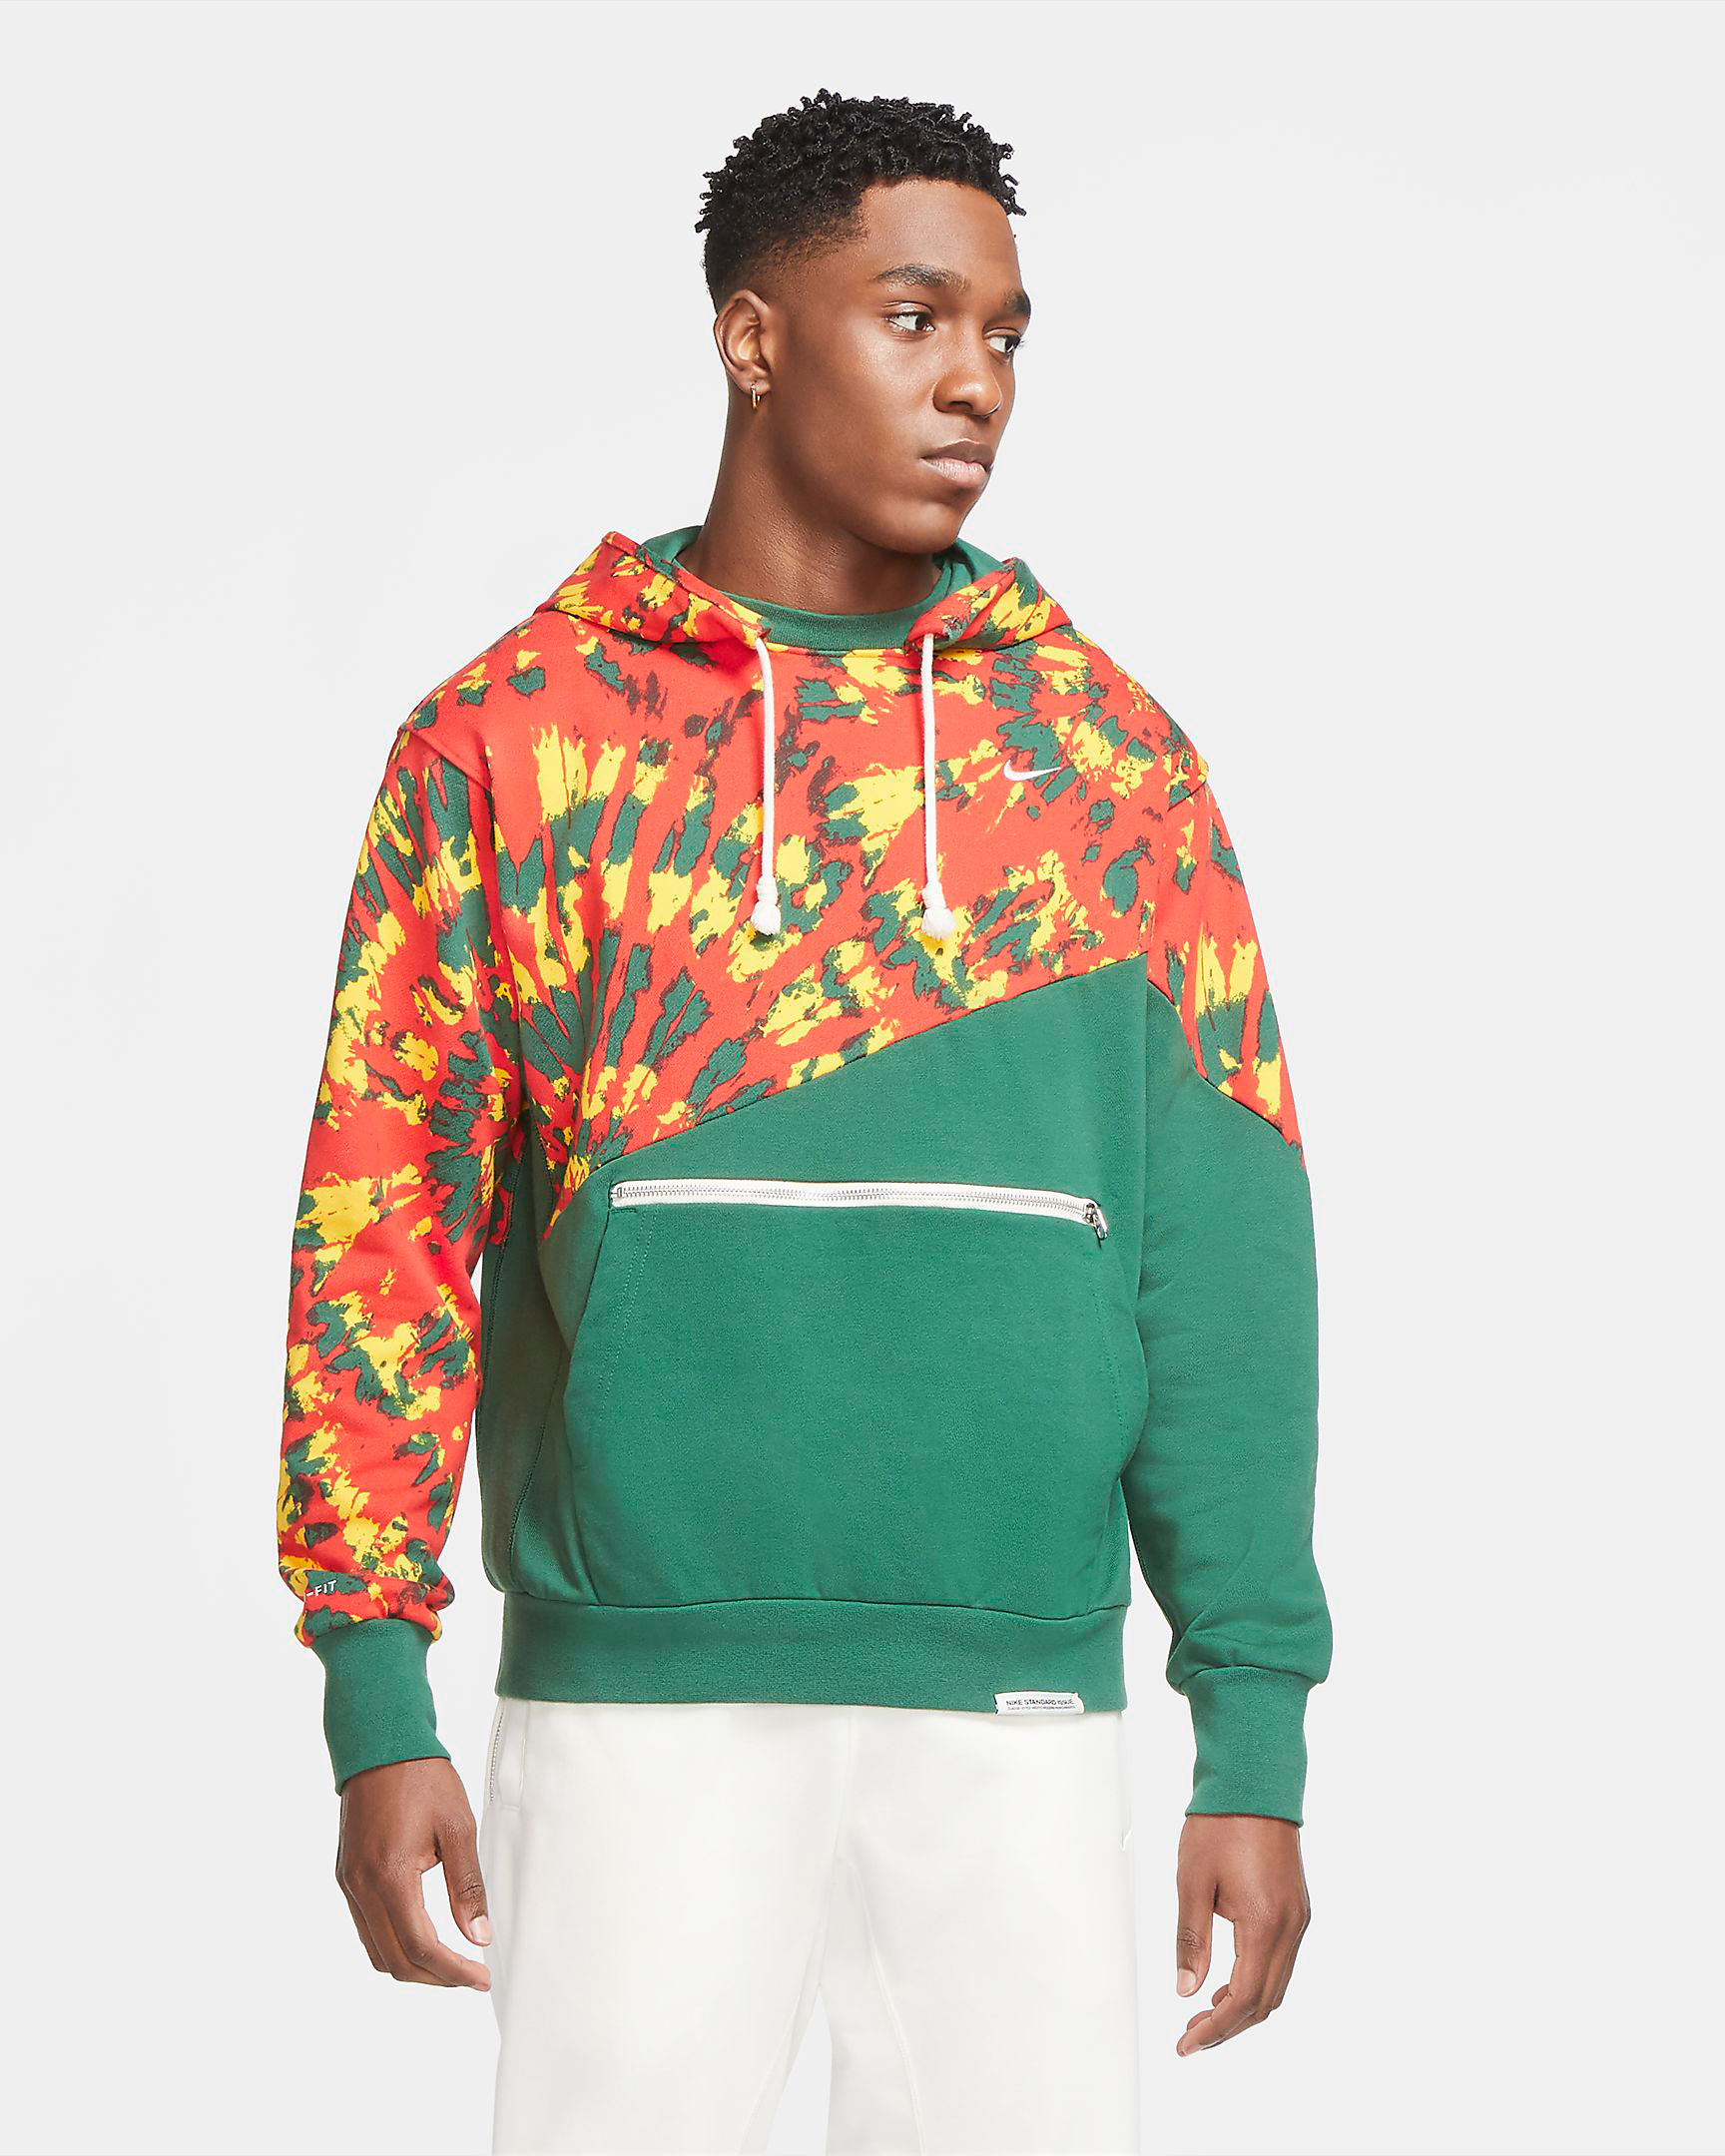 Nike Adapt Bb 2 Tie Dye Clothing To Match Sneakerfits Com